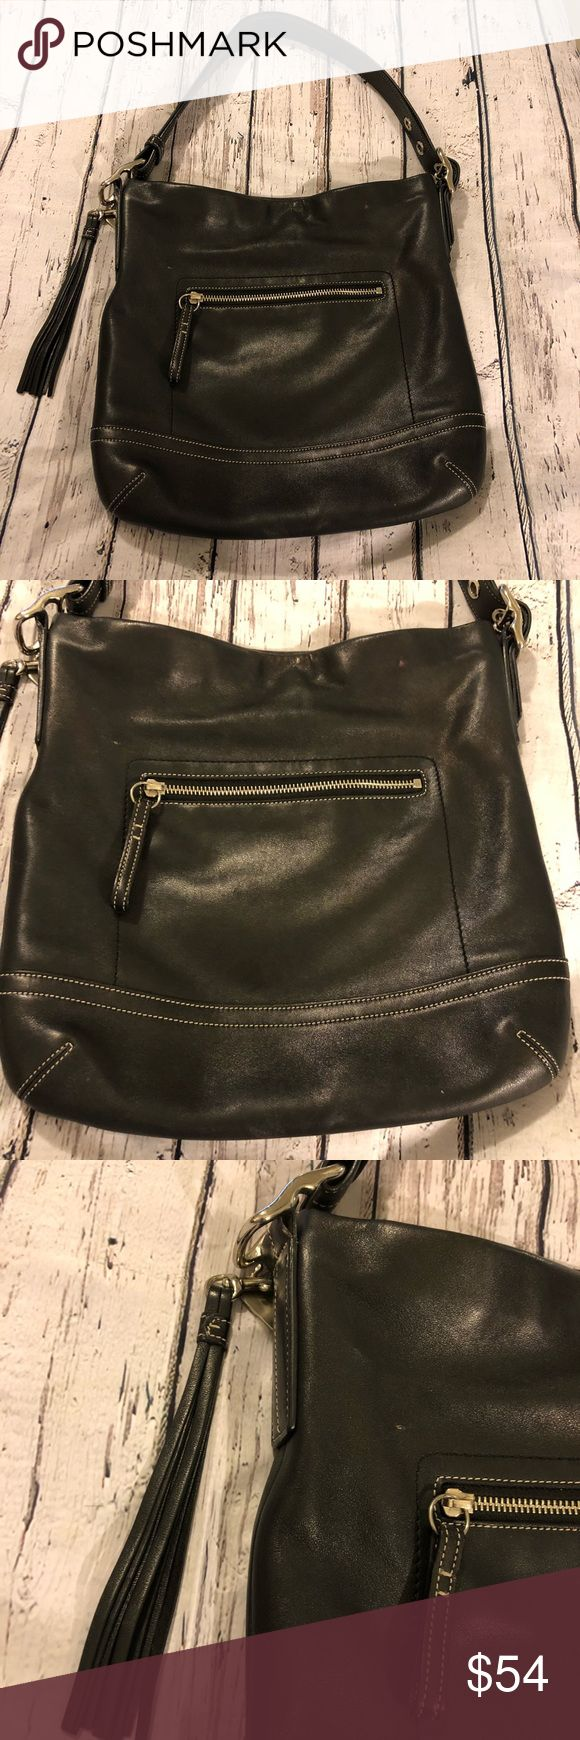 Coach Purse Black Cross Body Pocketbook Hand Bag Coach Purse  Excellent condition  Minimal signs of wear  Not brand new, but close.  Clean inside  No weird odors  Smoke free pet free home  Across measures 12  Length measures 12/13  Strap drop 9 Coach Bags Shoulder Bags